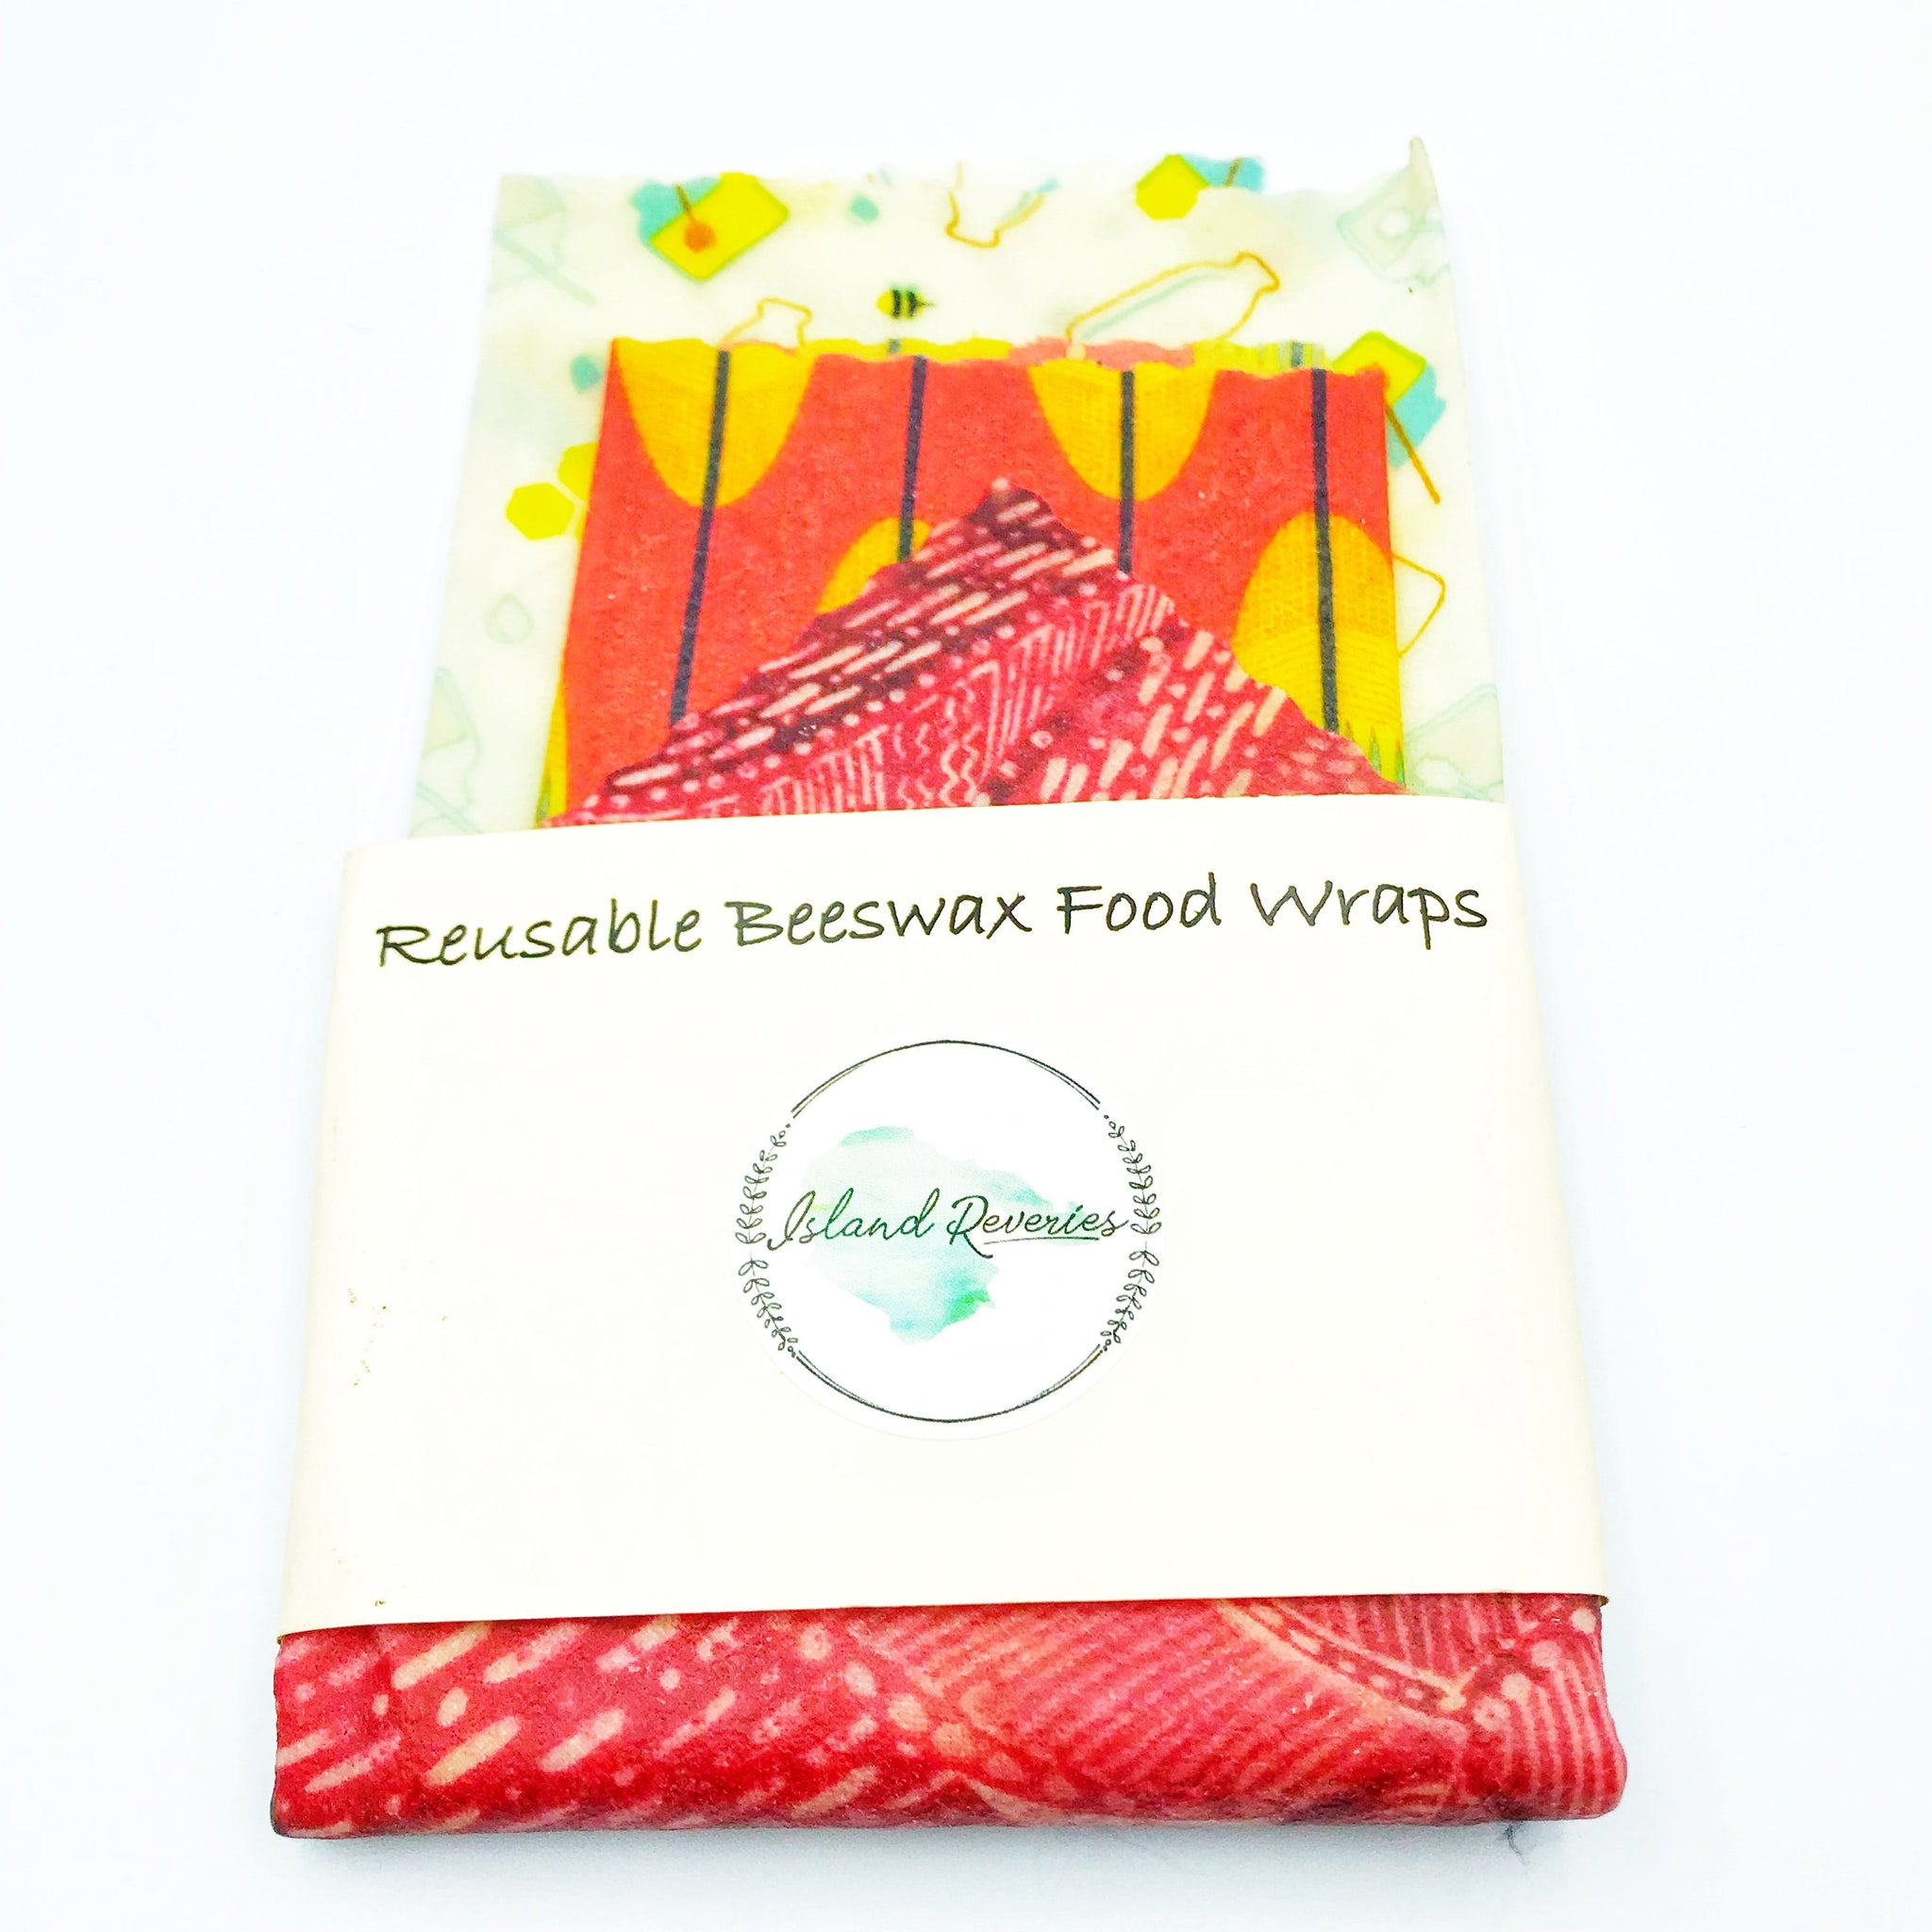 Island Reveries Reusable Beeswax Food Wraps, Cream, Red and Orange